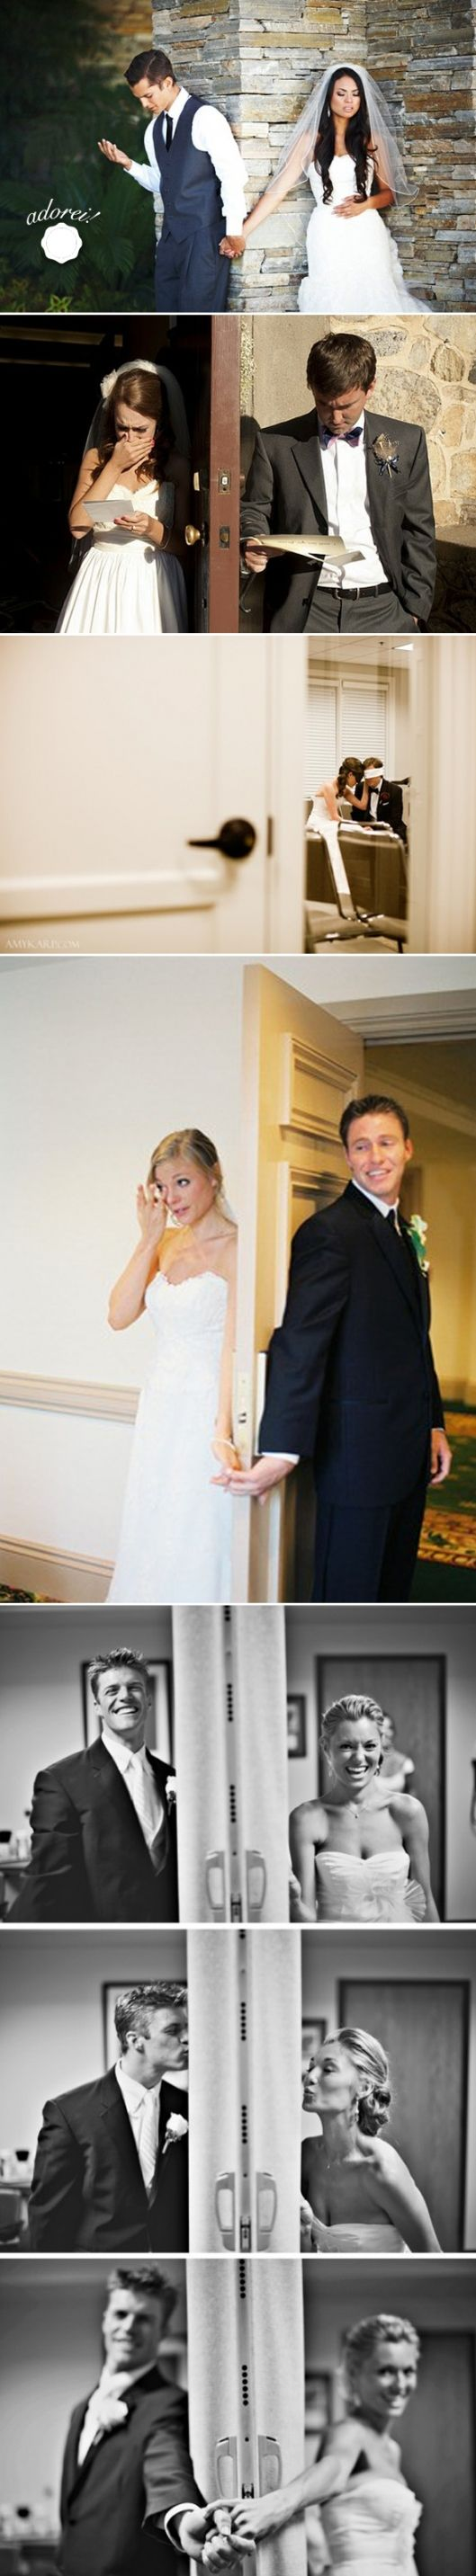 pre-wedding pictures without breaking tradition. :) awhh..